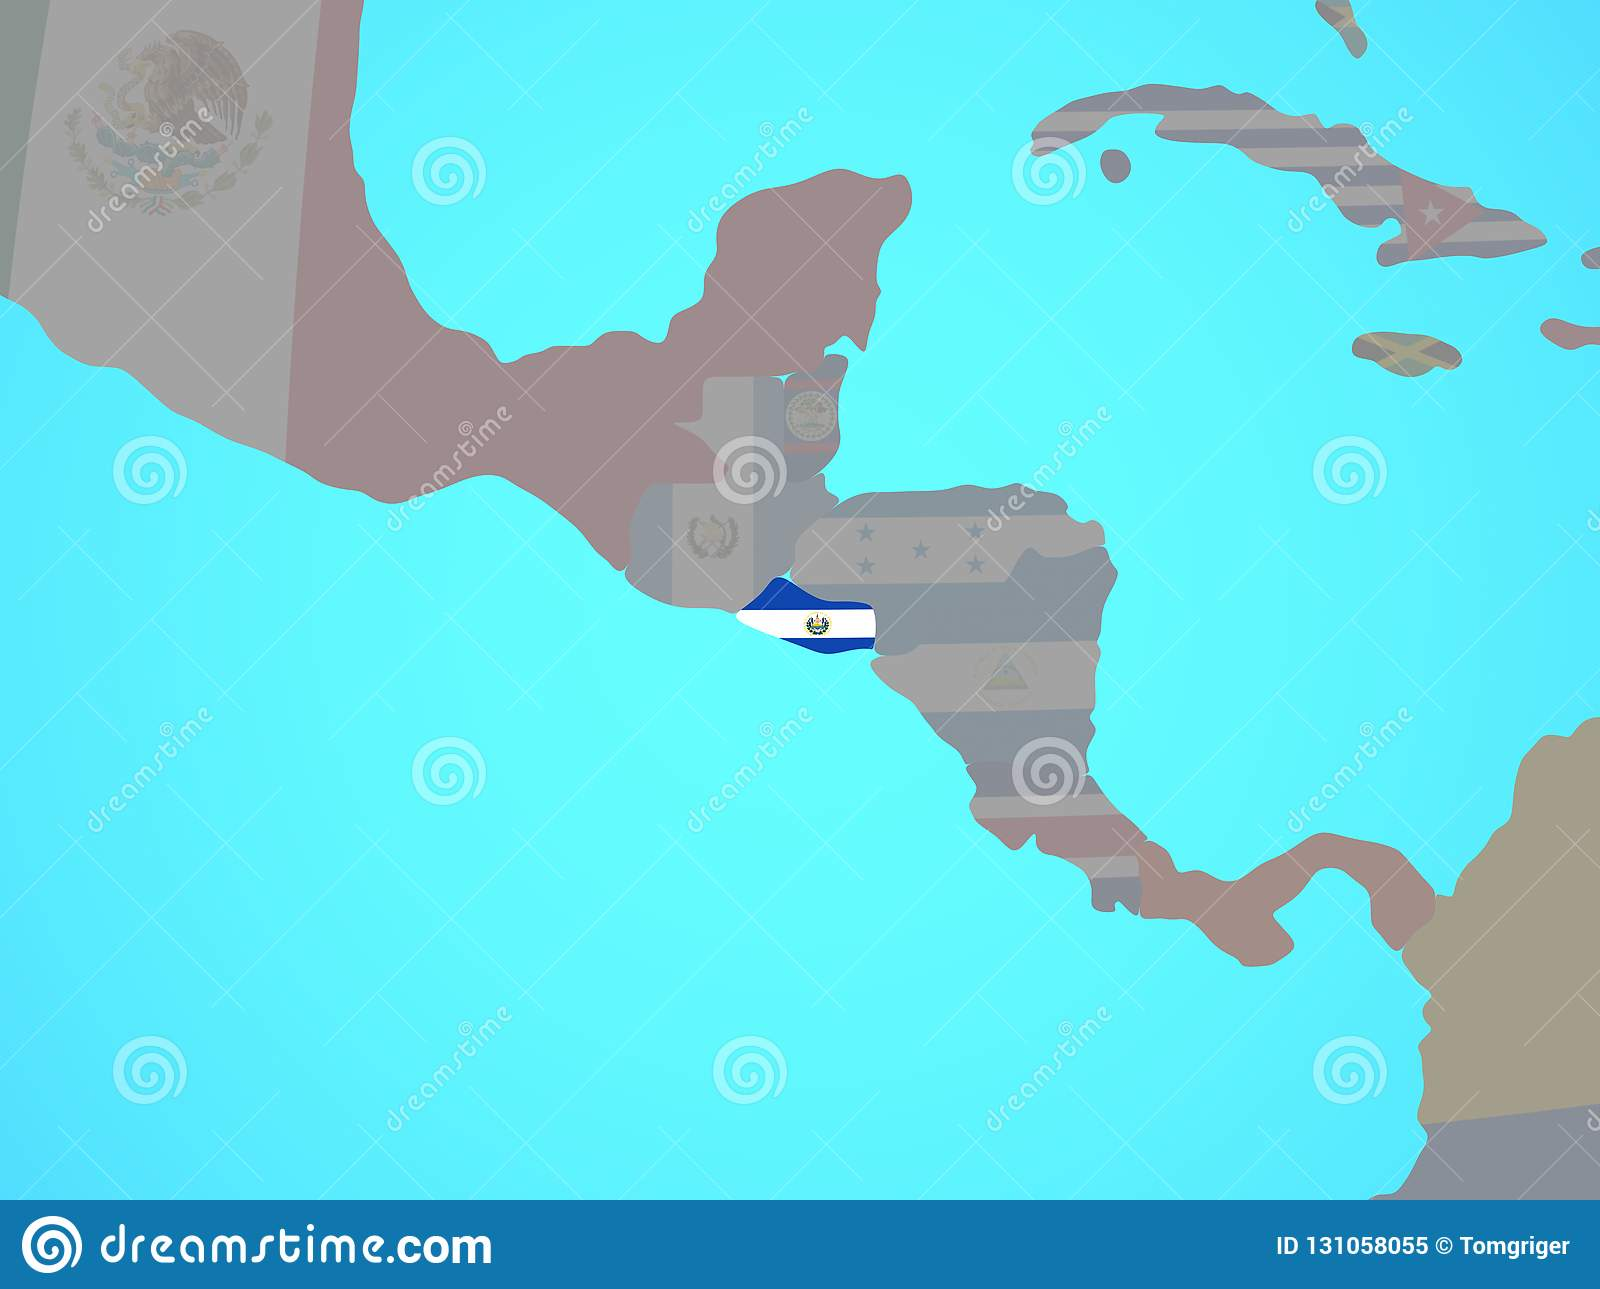 El Salvador With Flag On Map Stock Illustration ... on uruguay map, bage map, lima map, brazil map, nicaragua map, kusti map, the landing map, buenos aires map, costa rica map, taiohae map, sert map, mexico map, honduras map, peruana map, central america map, santiago map, passo fundo map, caracas map, south america map, world map,